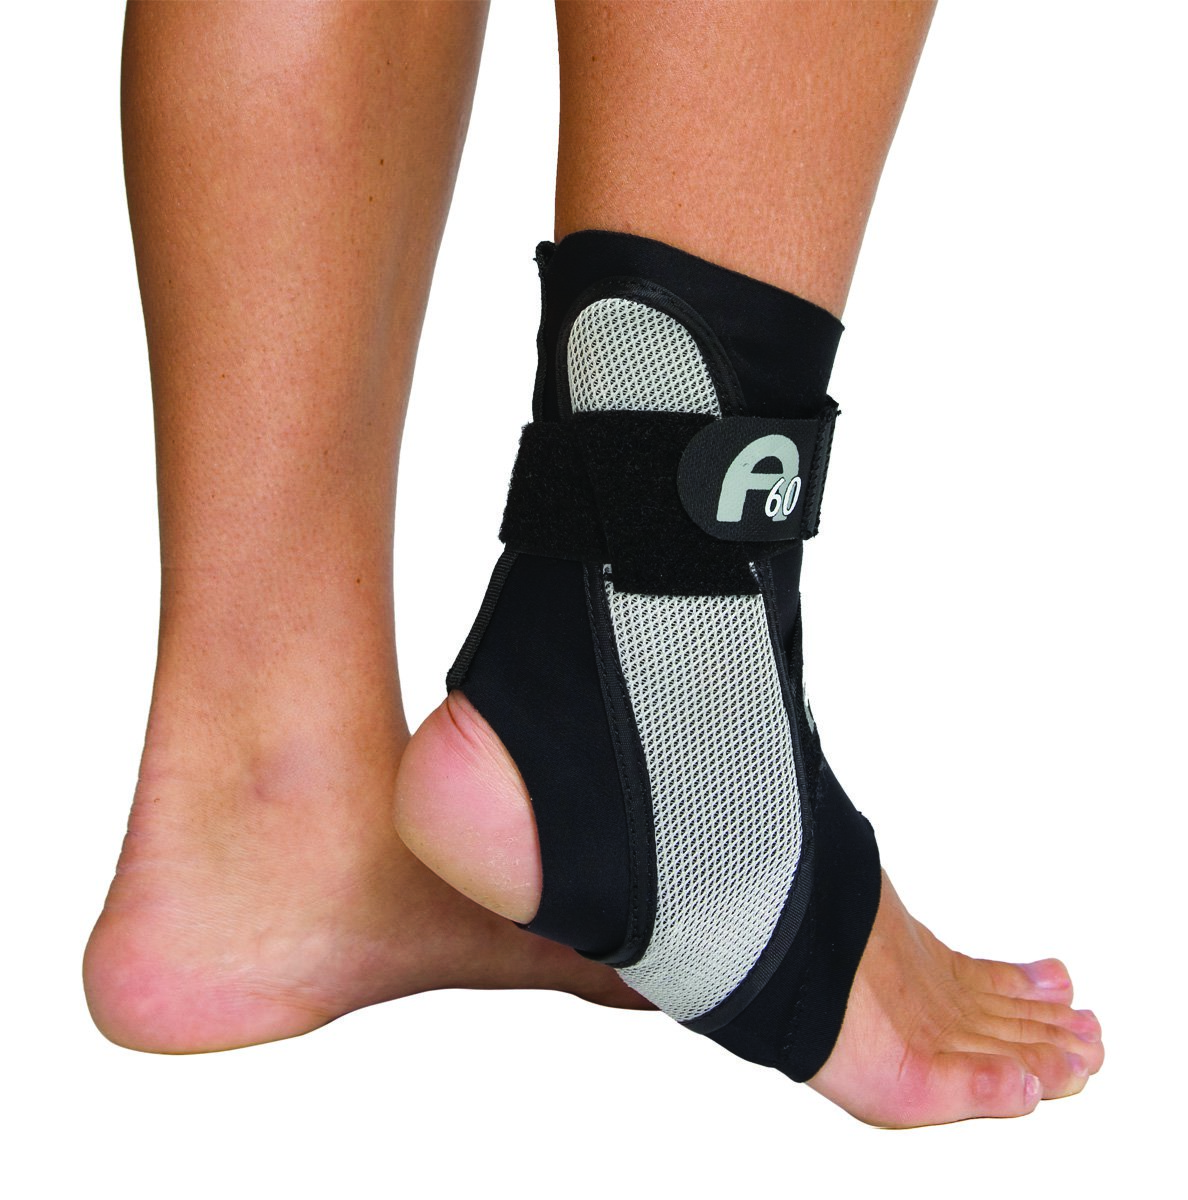 Image Of Ankle Support Aircast A60 Medium Strap Closure Female Size 9 - 13 / Male Size 75 - 115 Left Ankle